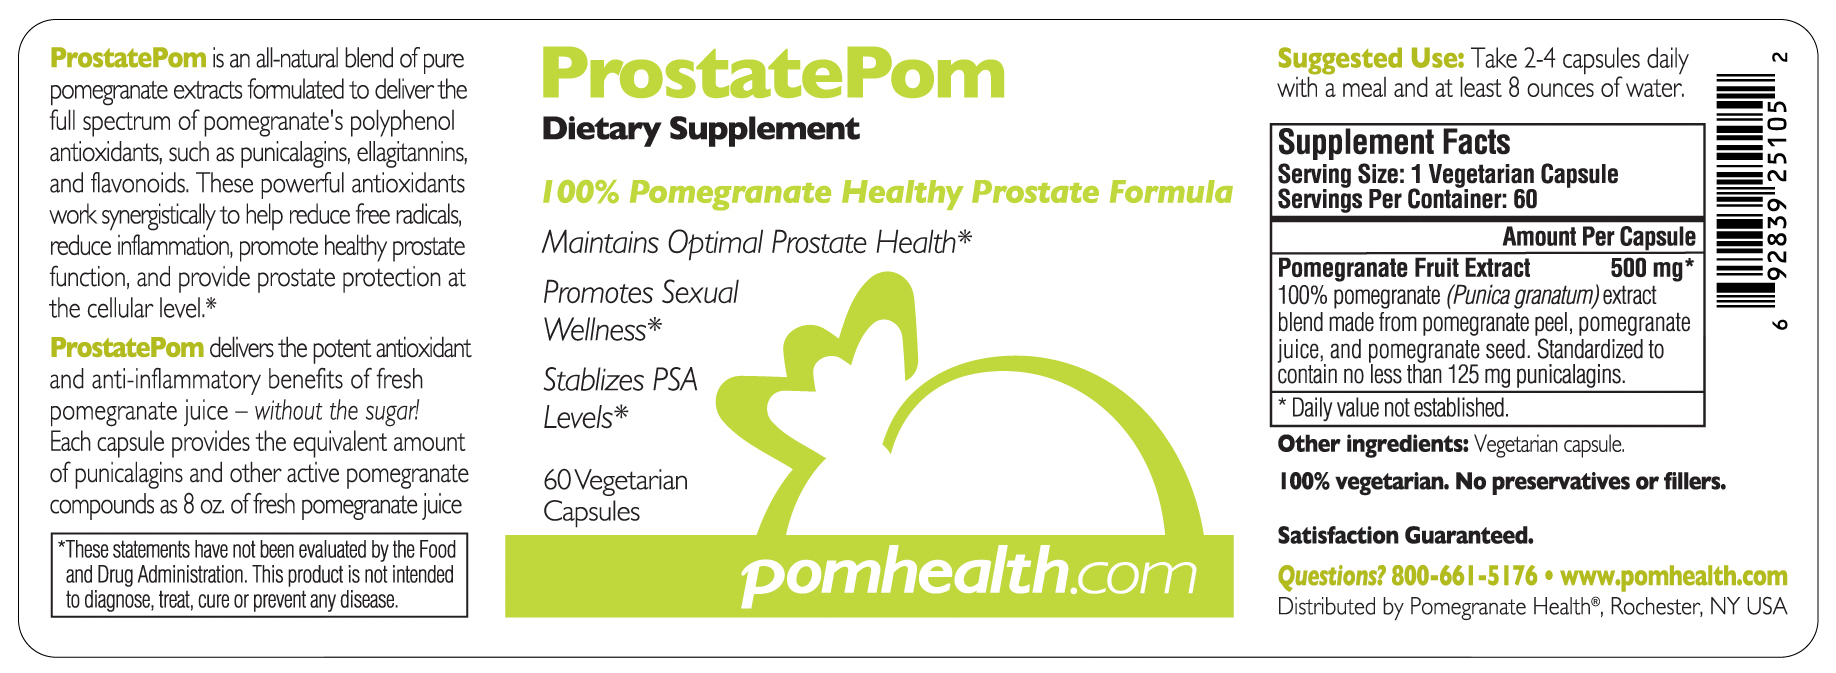 Prostate pom prostate health supplements antioxidants this product is not intended to diagnose treat cure or prevent any disease fandeluxe Gallery